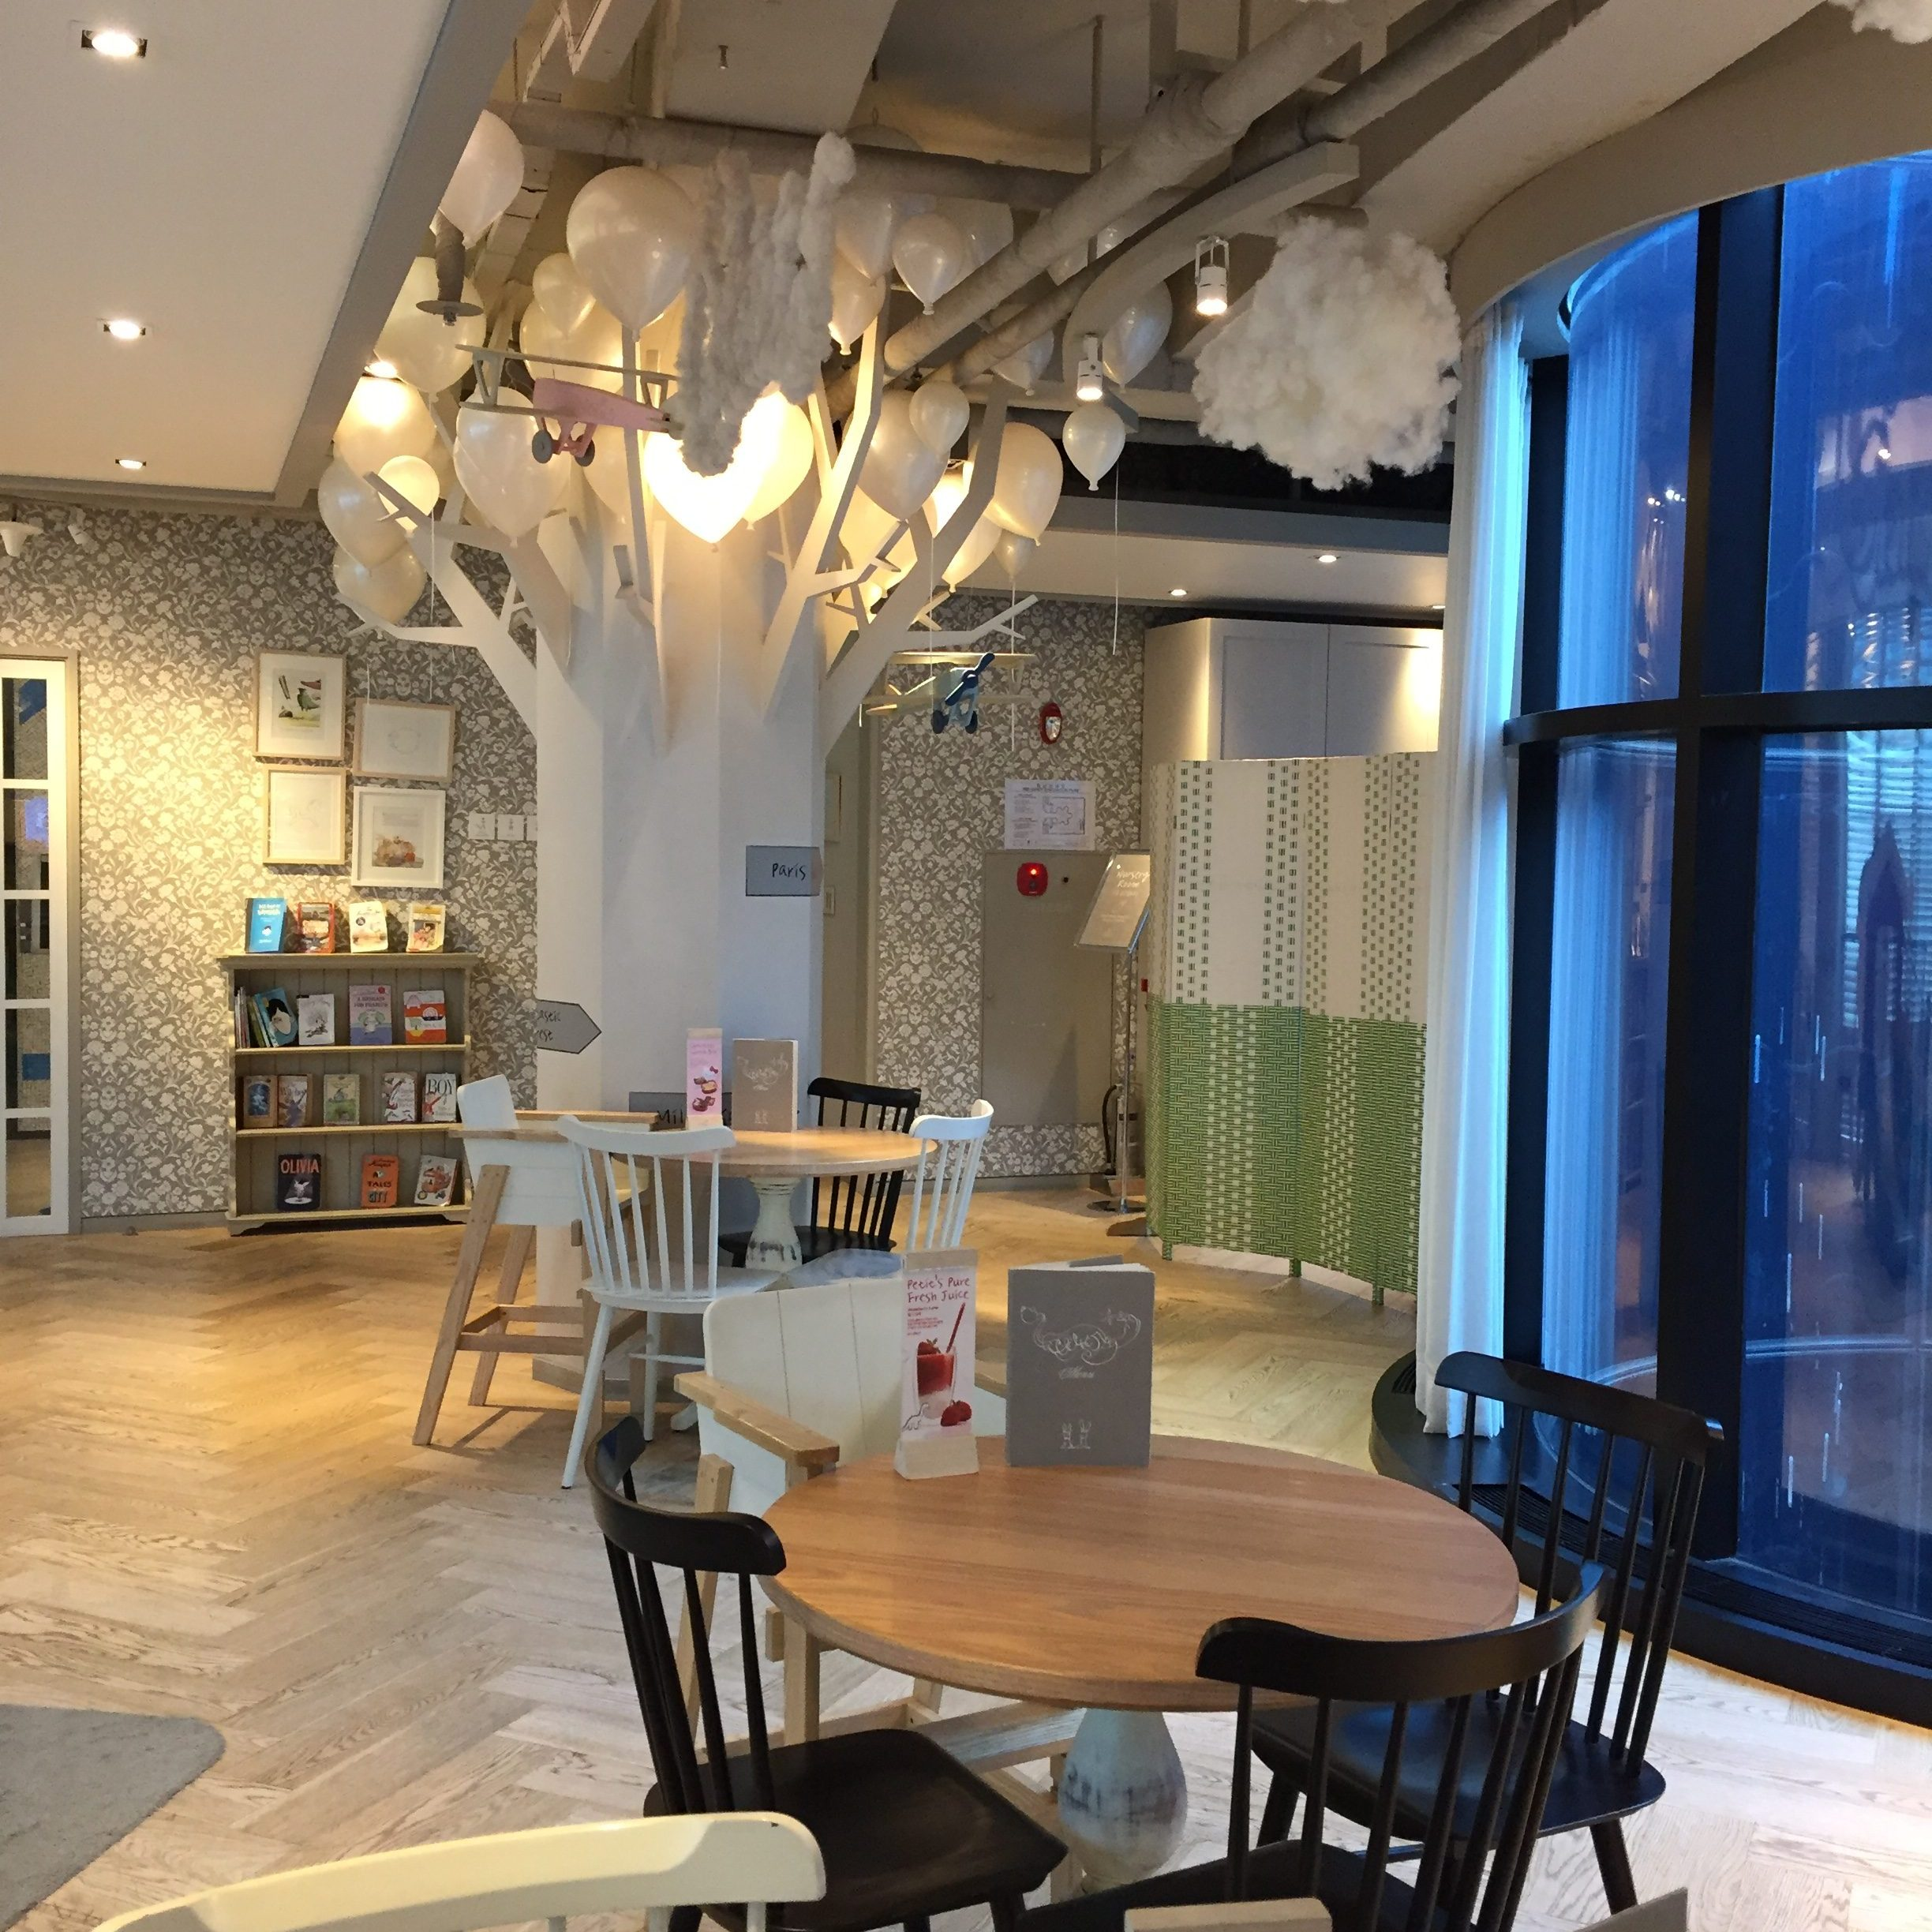 Best kids cafe Seoul